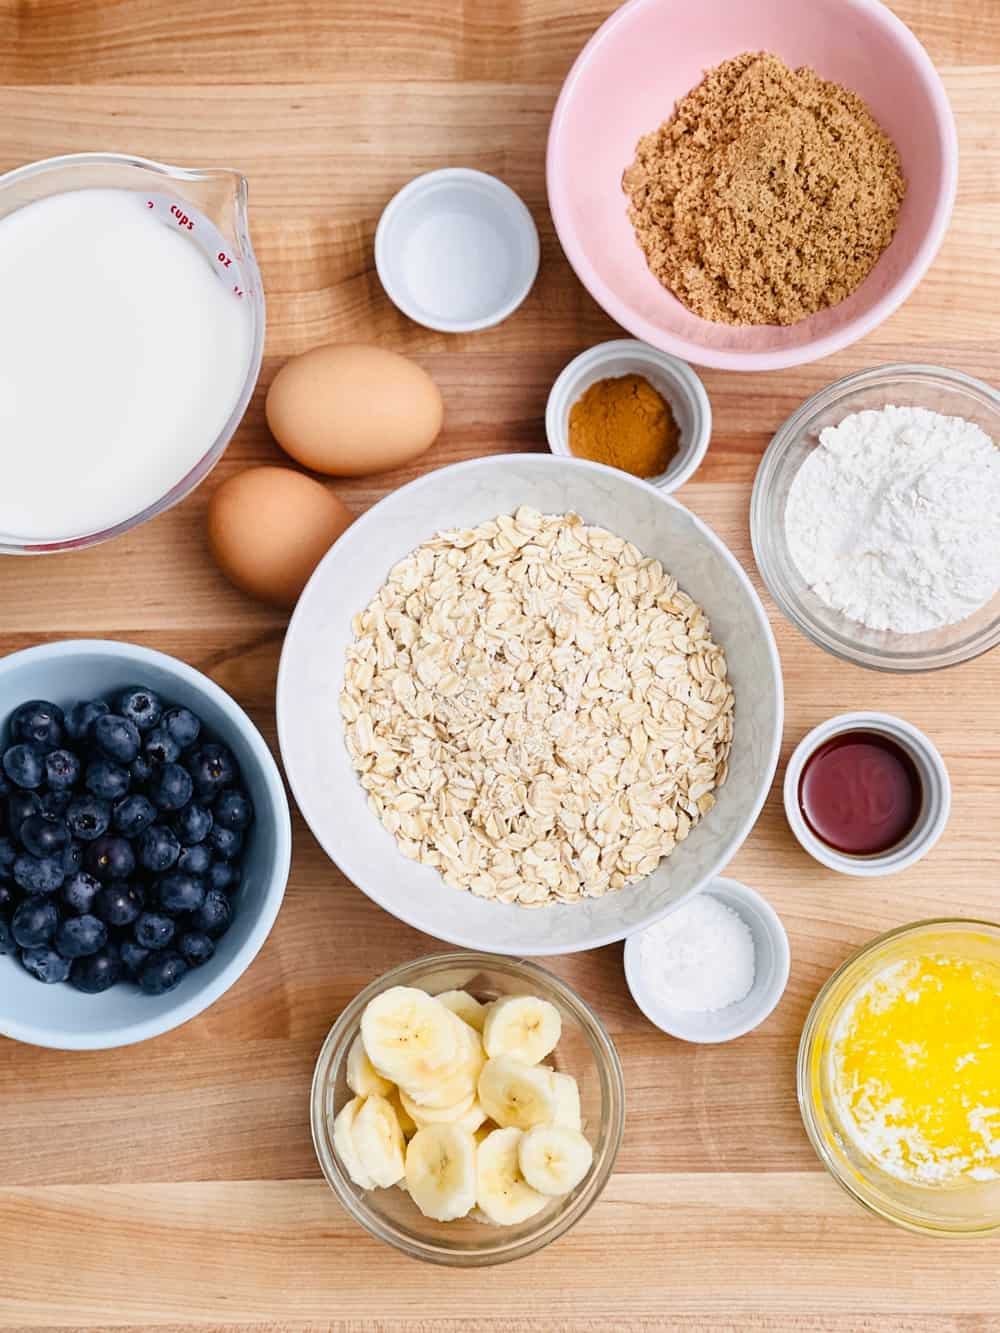 baked oats recipe and ingredients